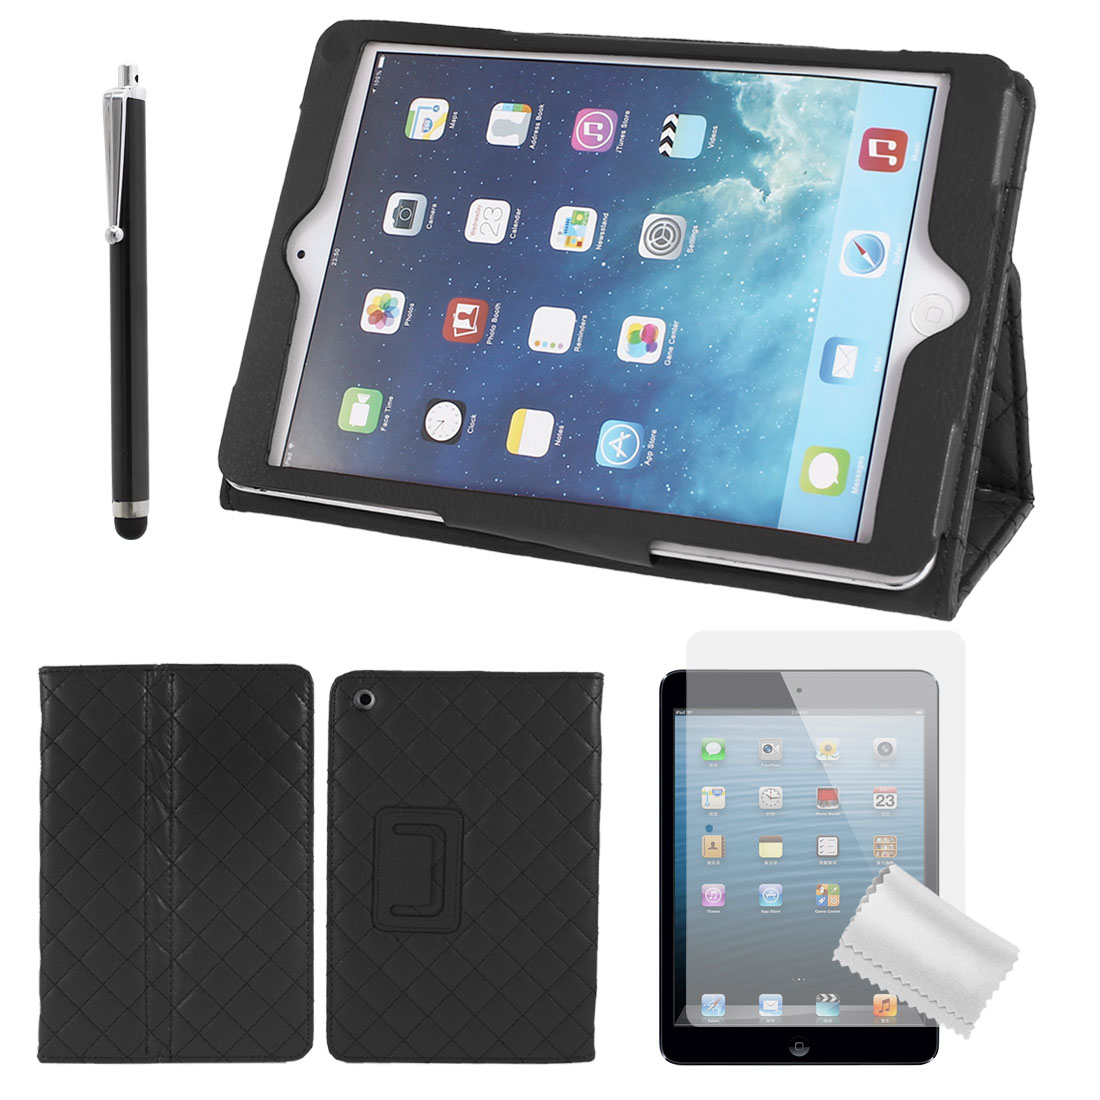 Black PU Leather Magnetic Folio Stand Cover Case + Protective Film + Stylus Pen for iPad Mini